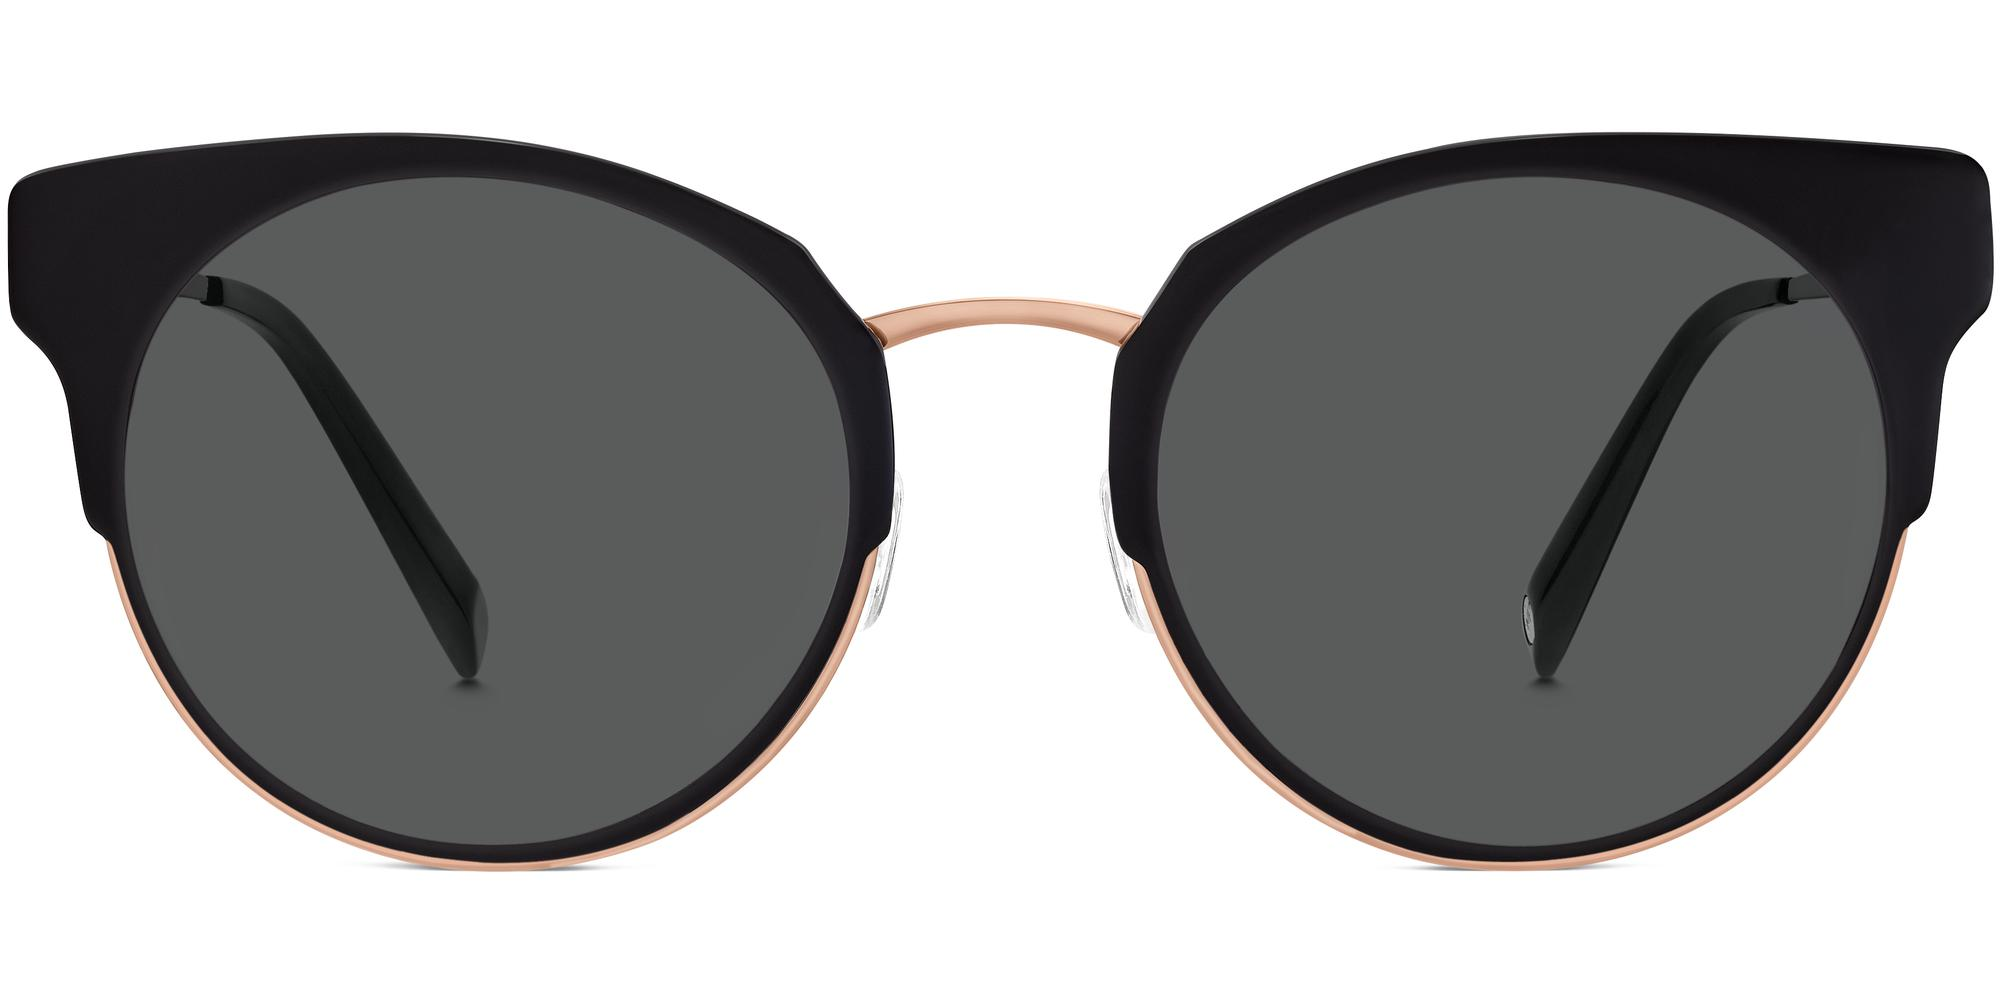 Cleo f sunglasses in Jet Black with Rose Gold Non-Rx